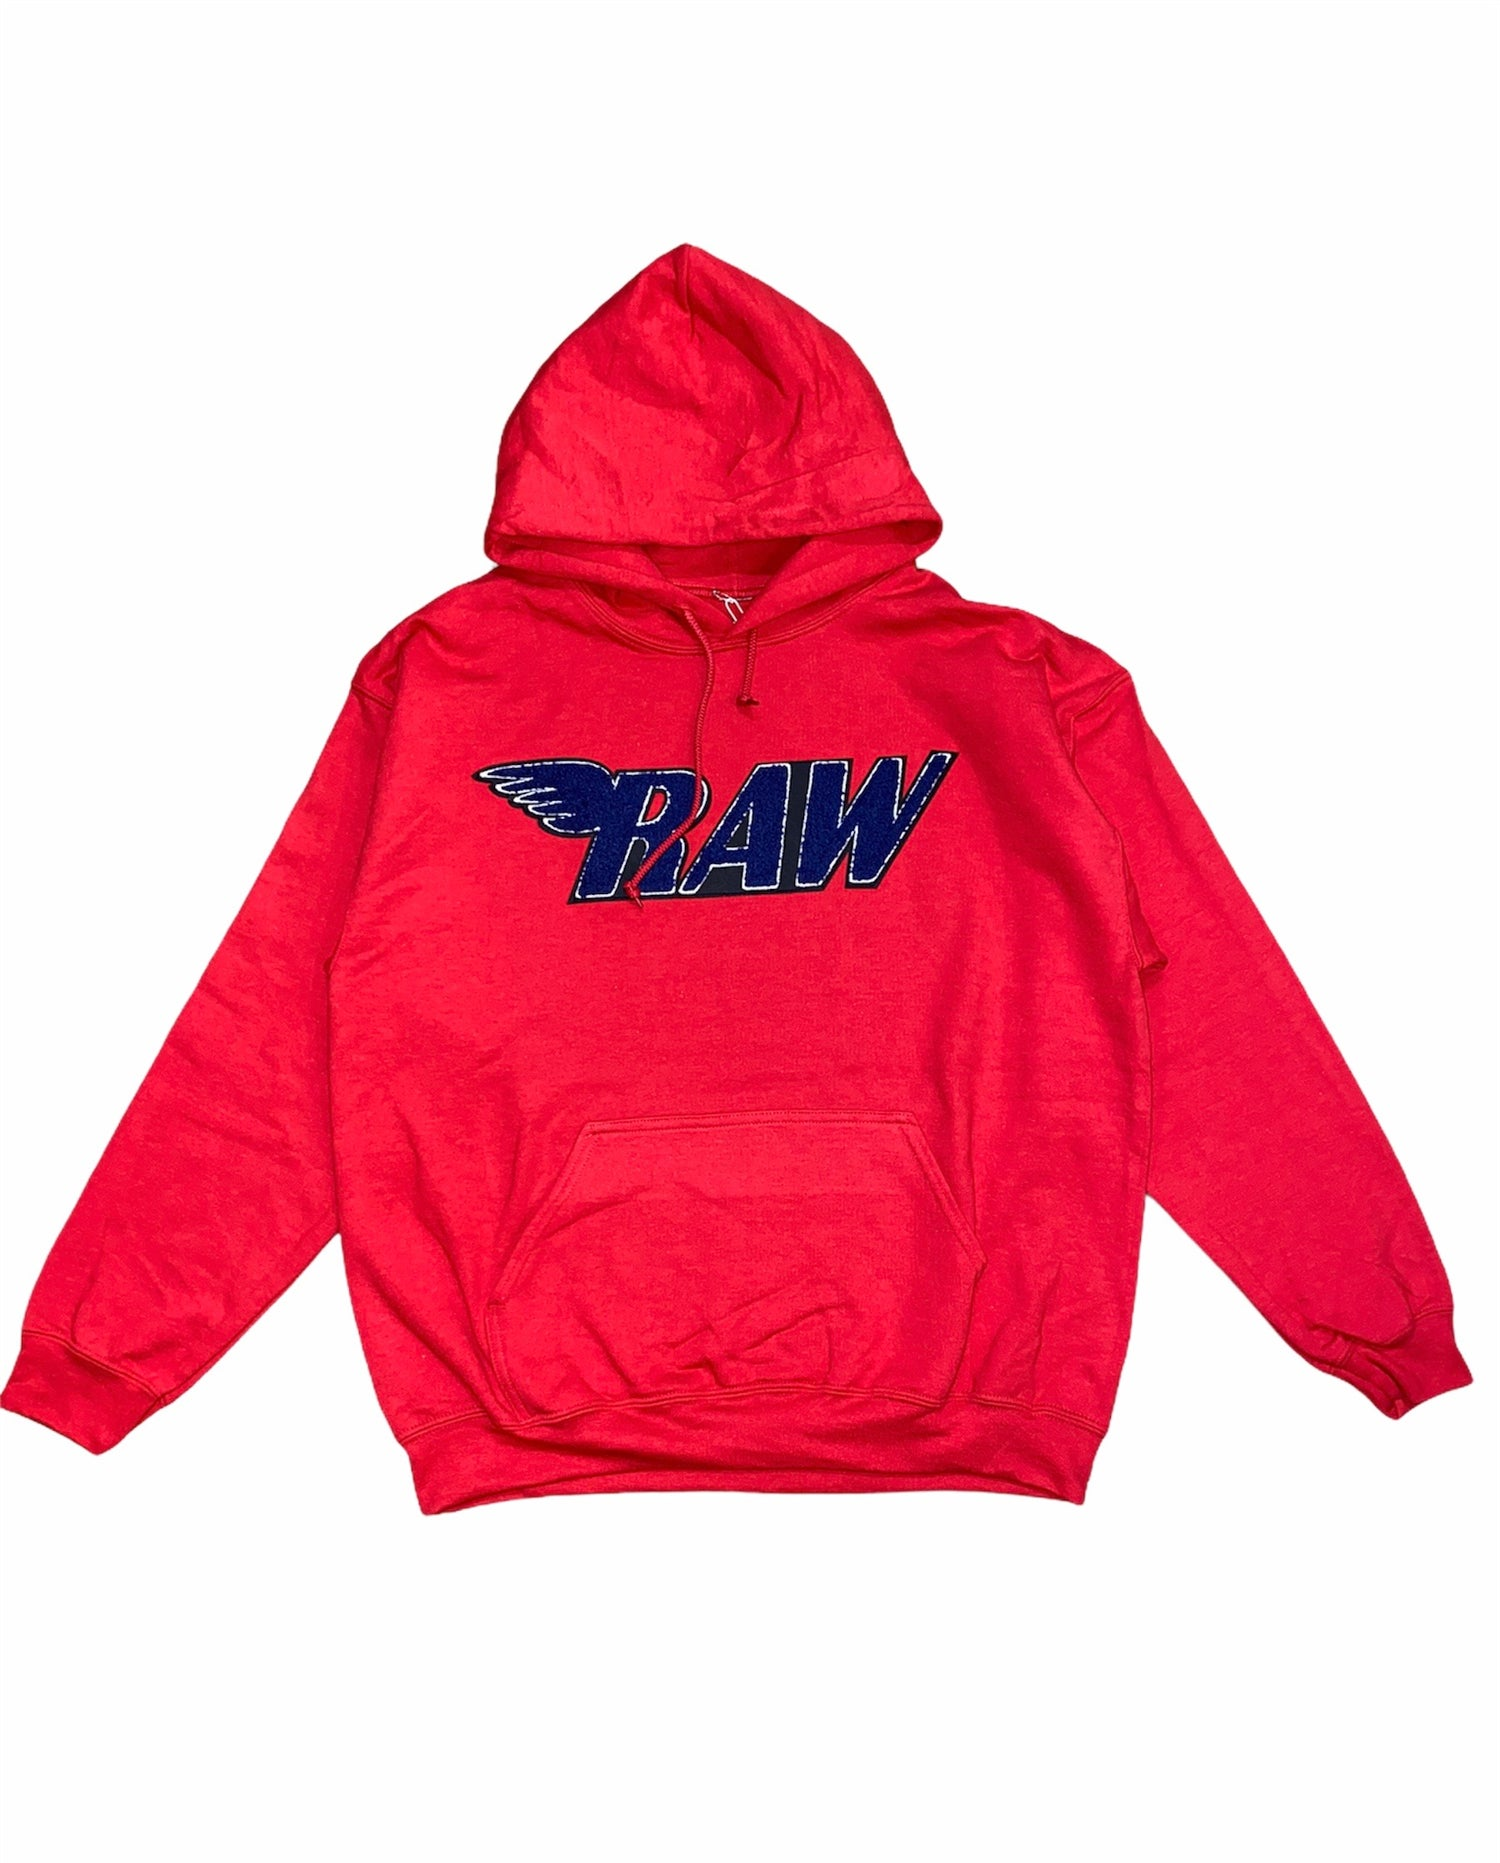 Rawyalty Hoodie - Raw - Red And Navy